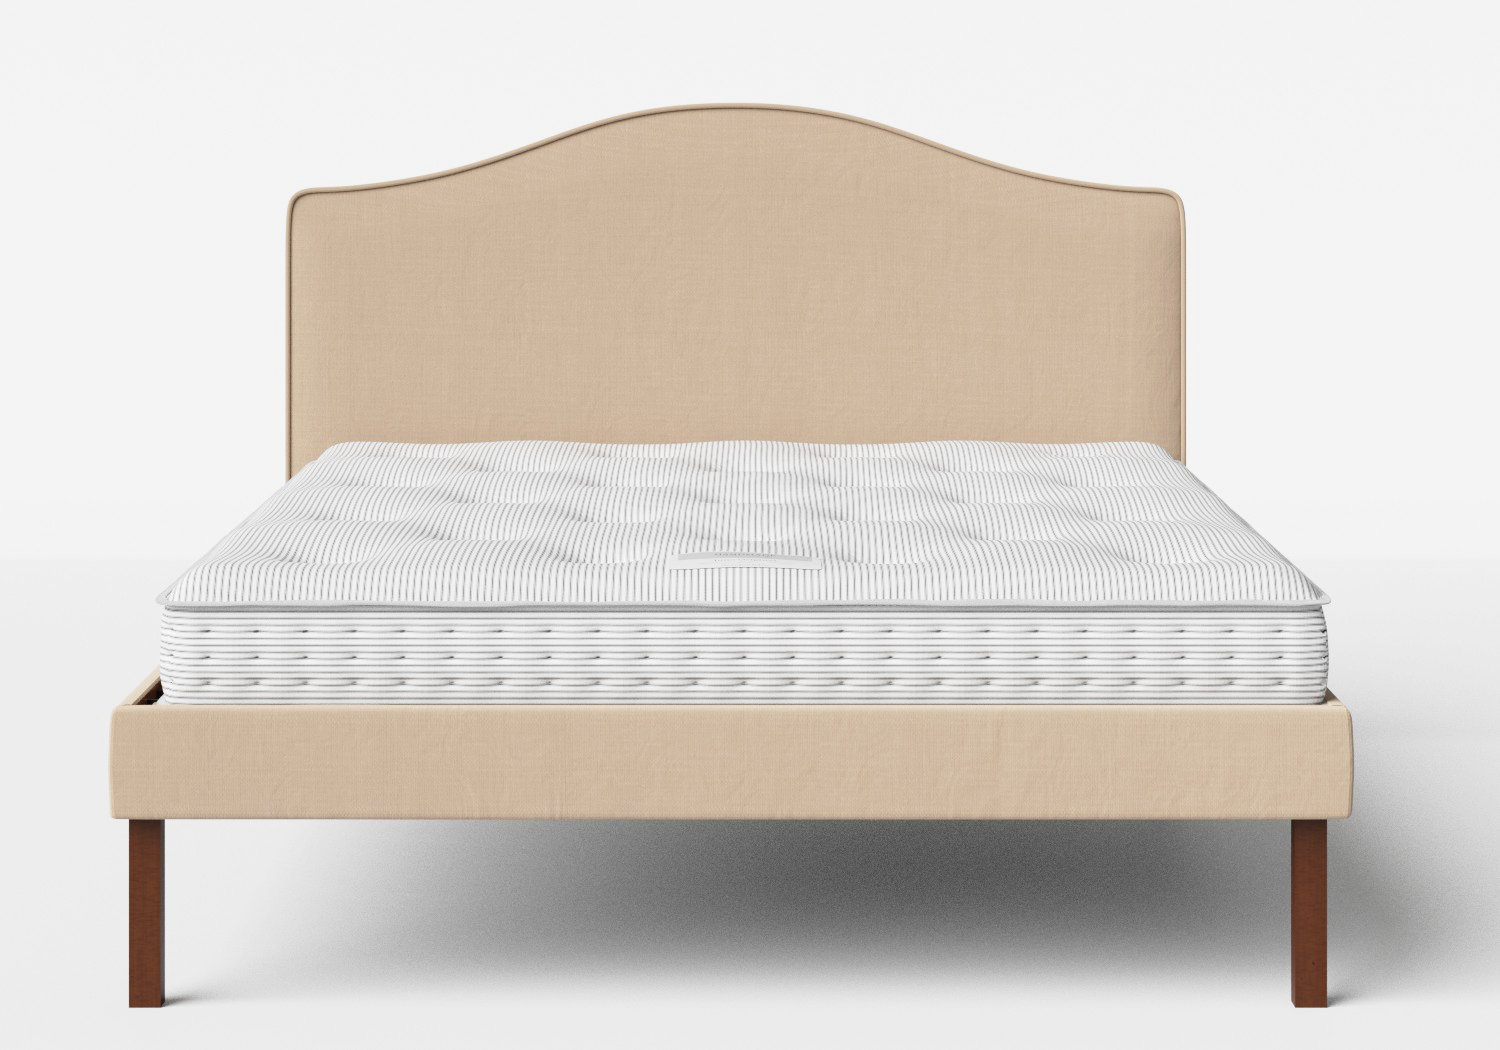 Yoshida Upholstered Bed with Natural fabric with piping shown with Juno 1 mattress